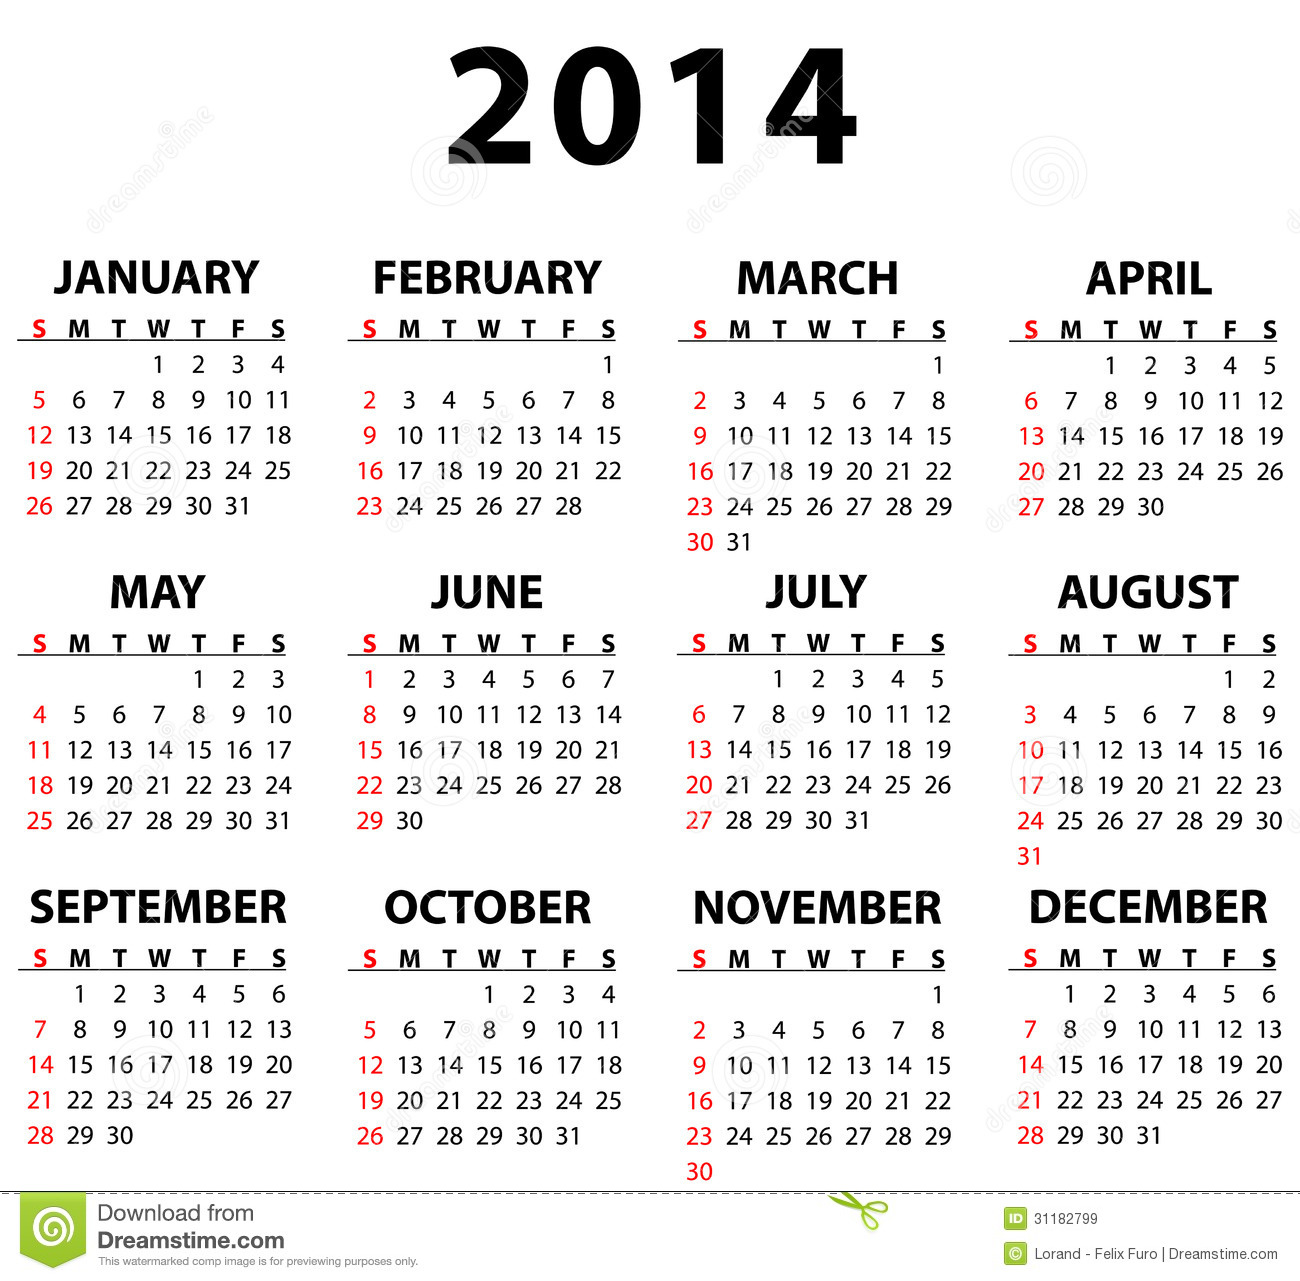 August 2014 Cpo Offers Table Jpg: Calendar For 2014 Stock Vector. Illustration Of March